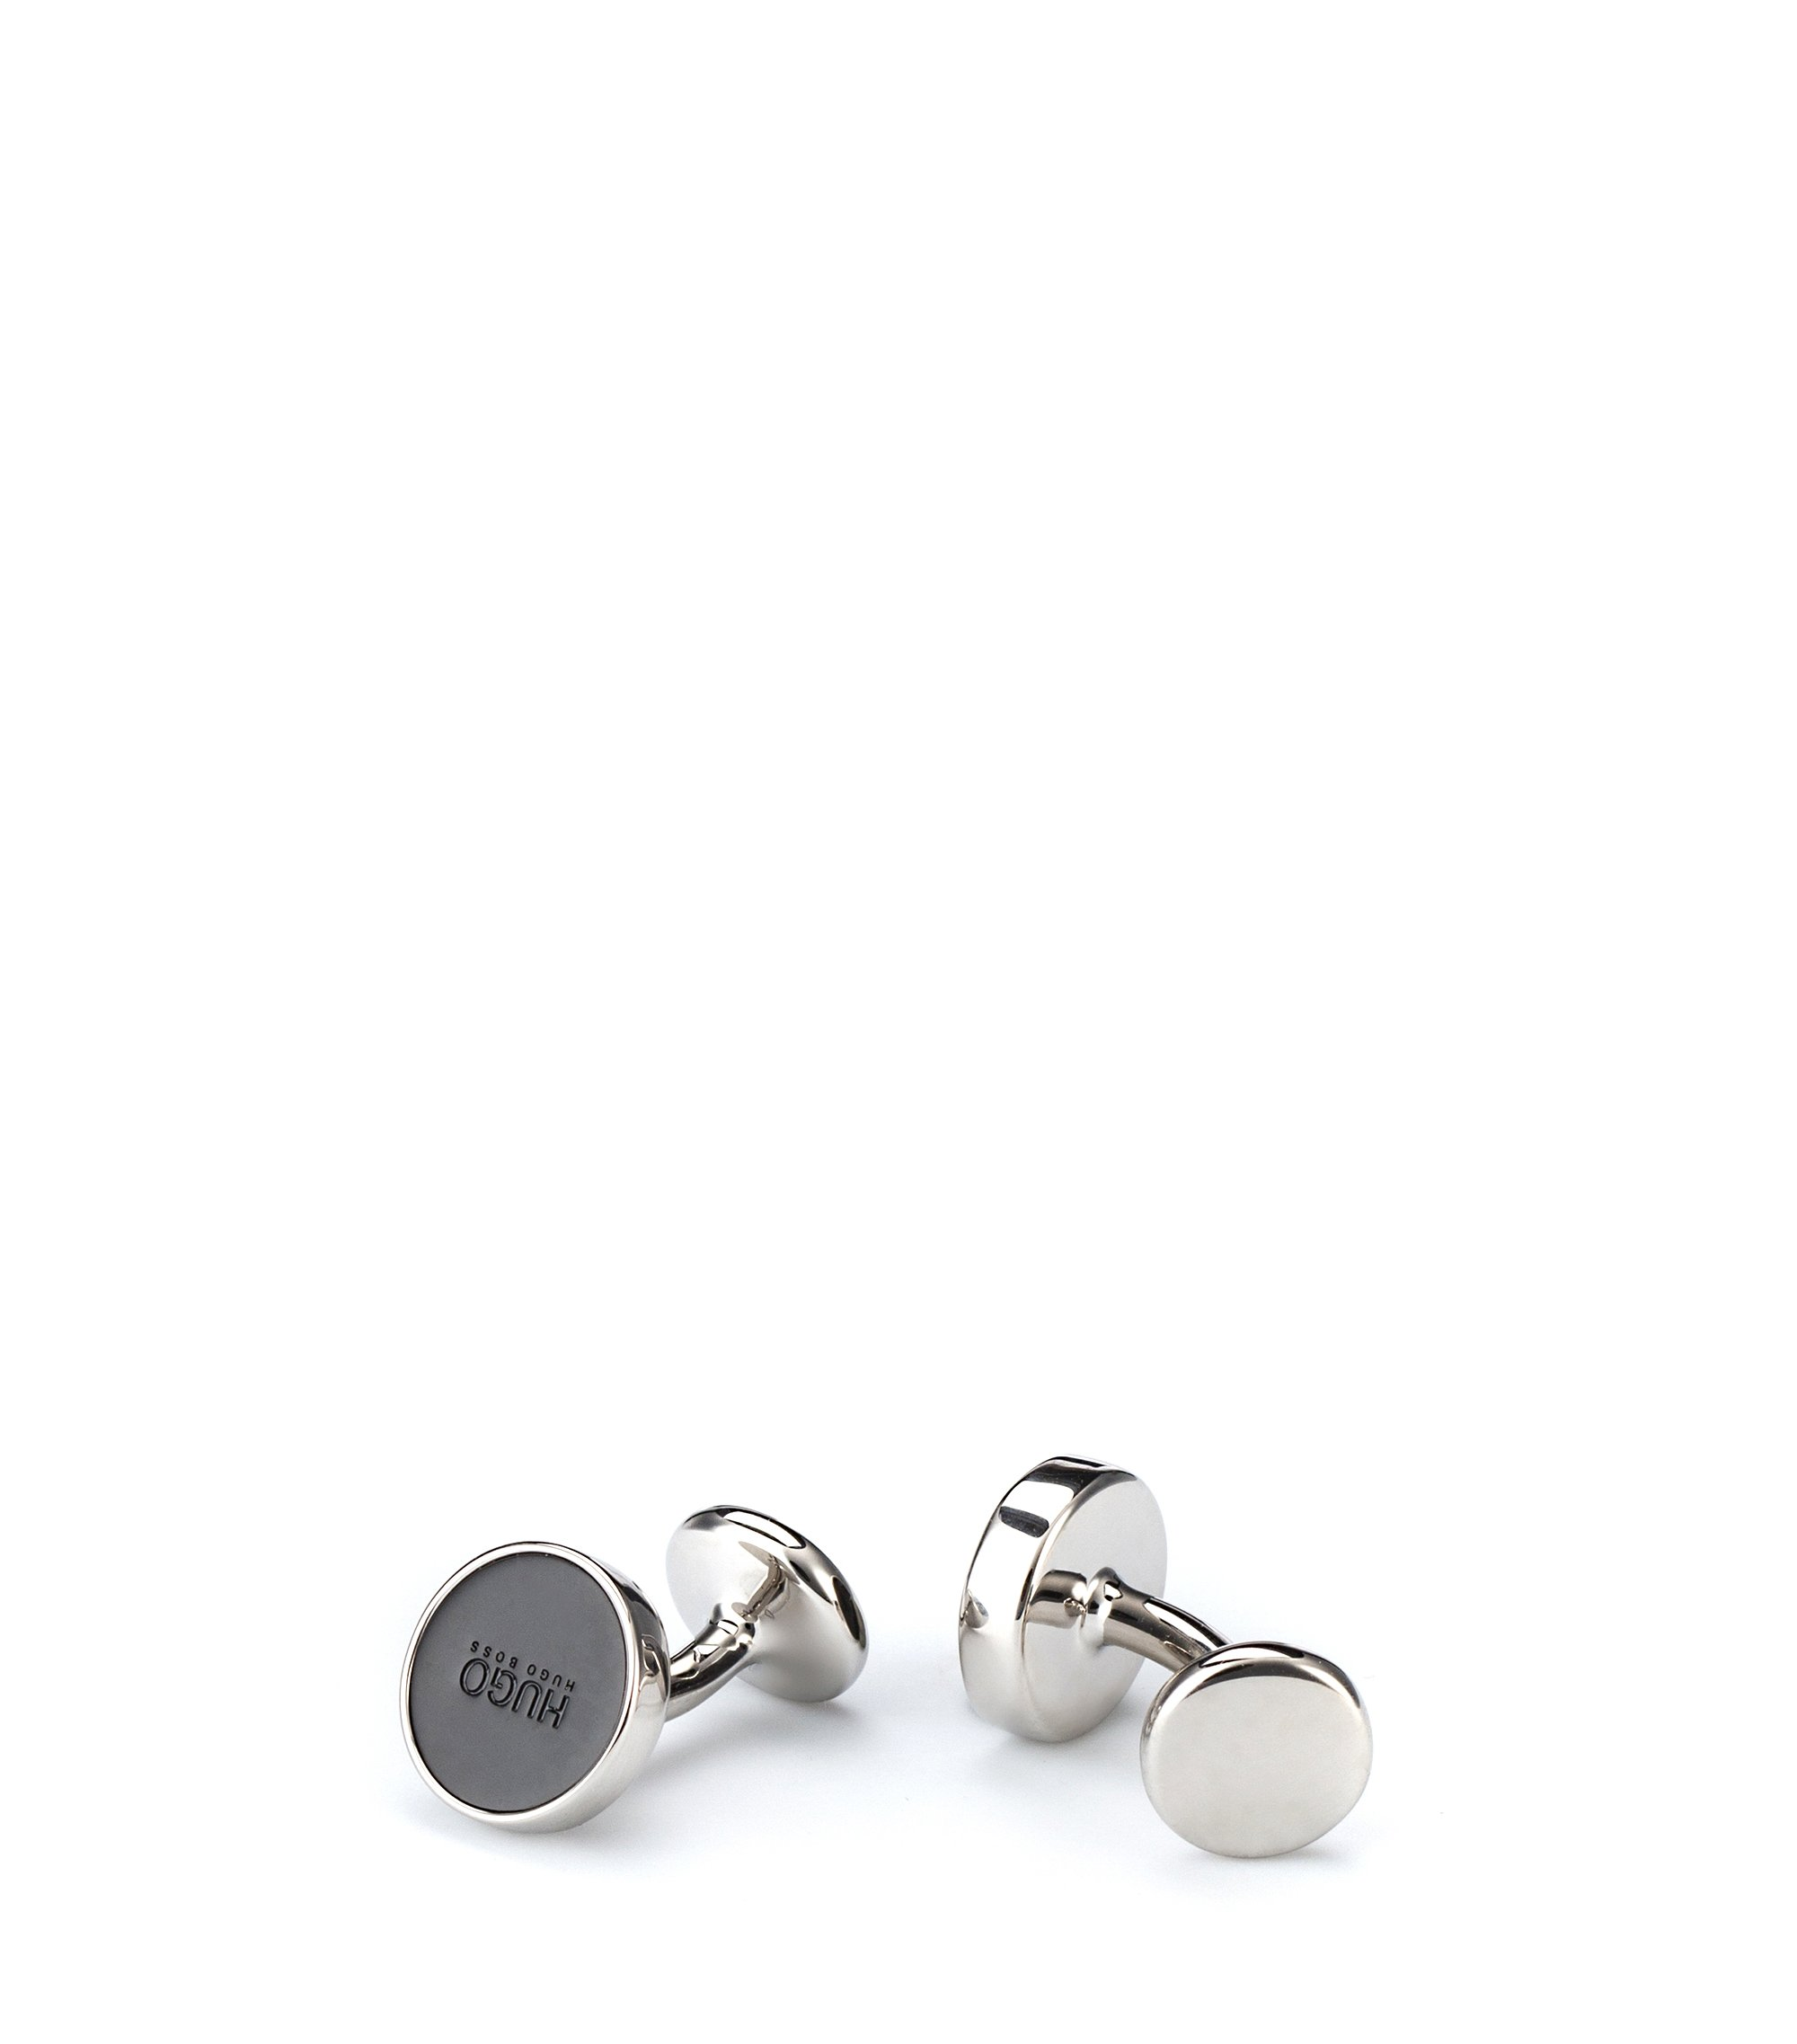 Round cufflinks with enamel core, Black